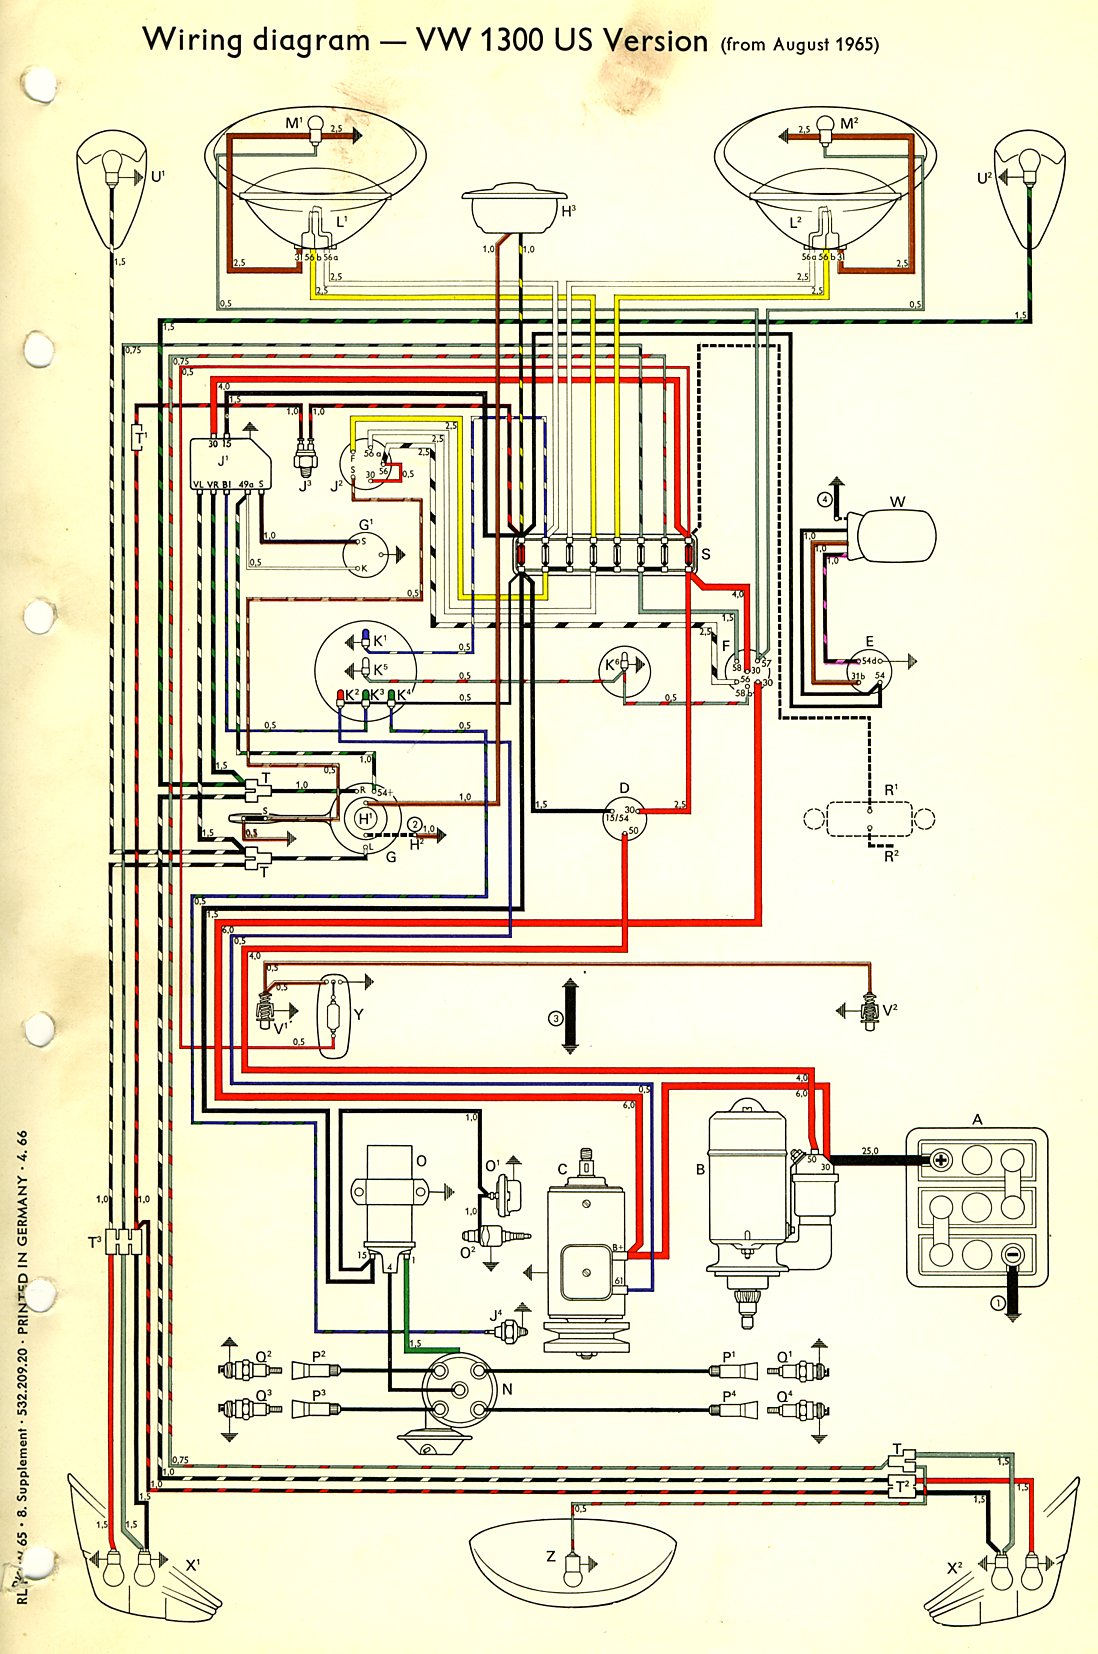 66 vw bug wire diagram of the 1966 vw beetle forum :: view topic - could it be a fuse? #4